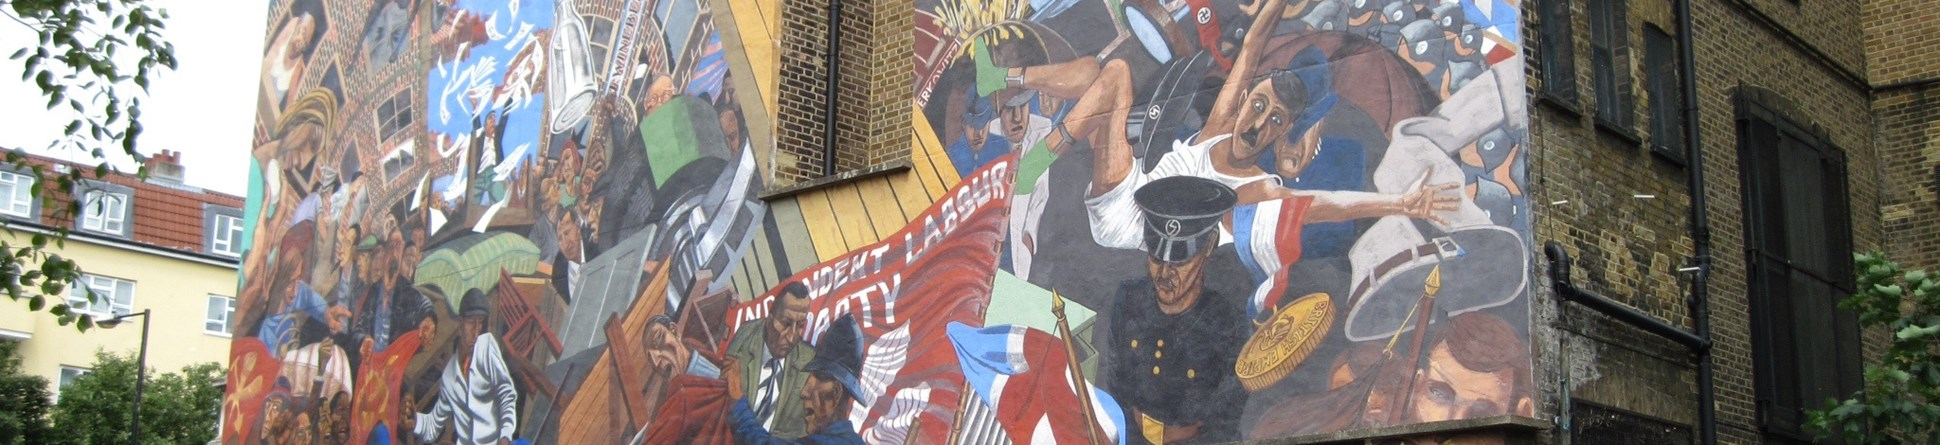 Image of the Cable Street Mural, East London. It commemorates the Battle of Cable Street which took place on Sunday 4 October 1936.